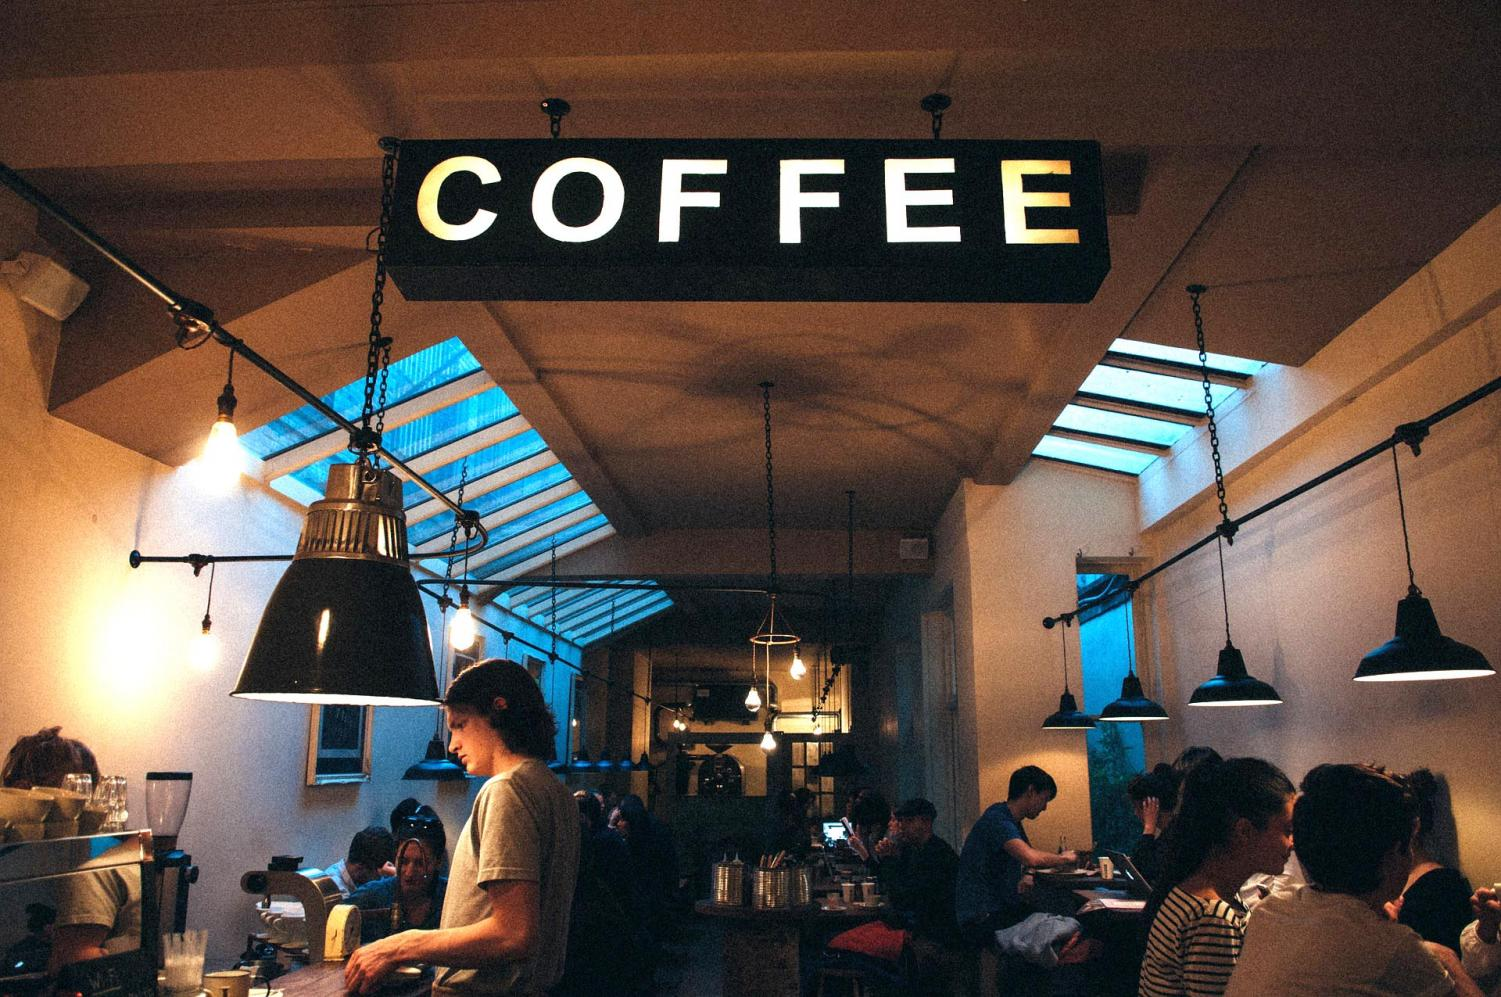 Some people like studying at coffee shops. Nowadays, there is even websites that help replicate the sound of a coffee shop at home.